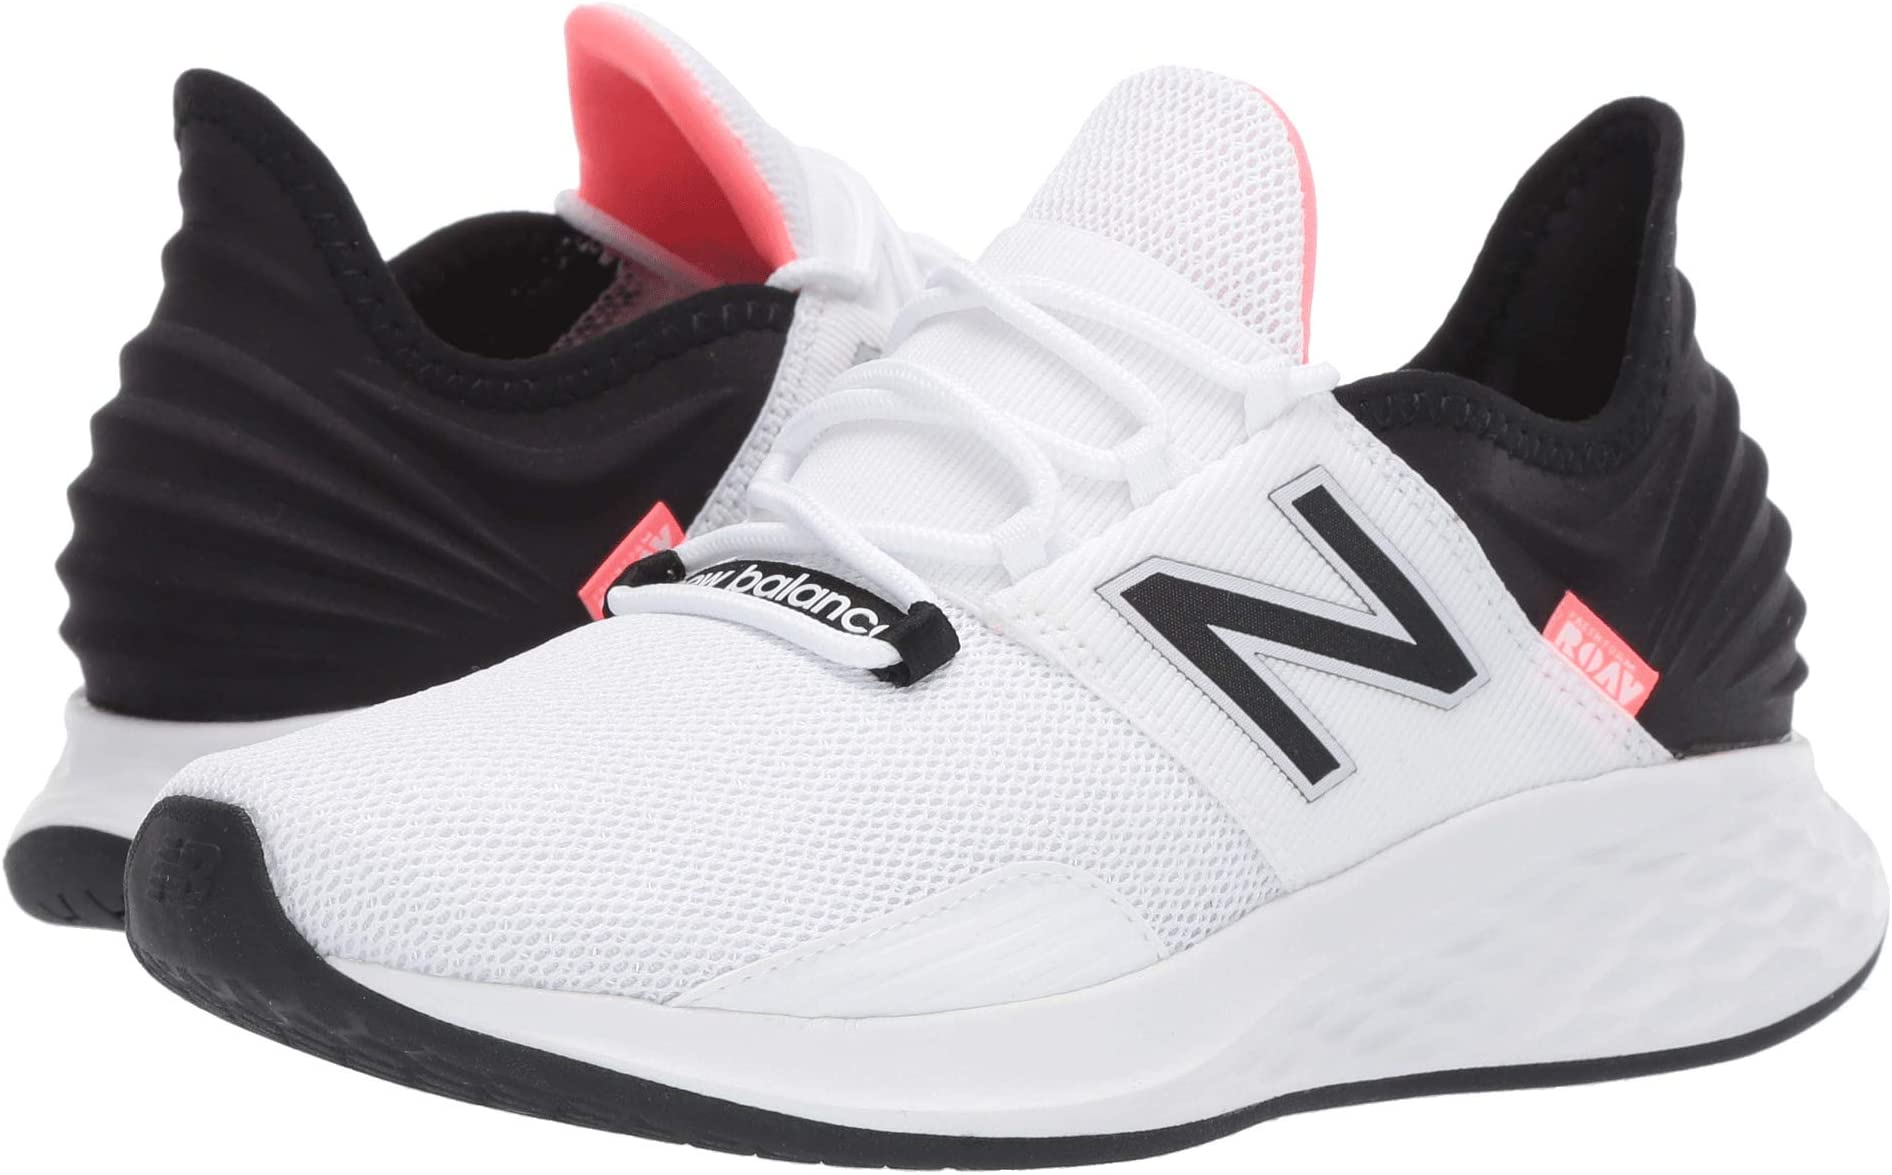 305e376485 New Balance Shoes, Clothing, Activewear, Socks | Zappos.com